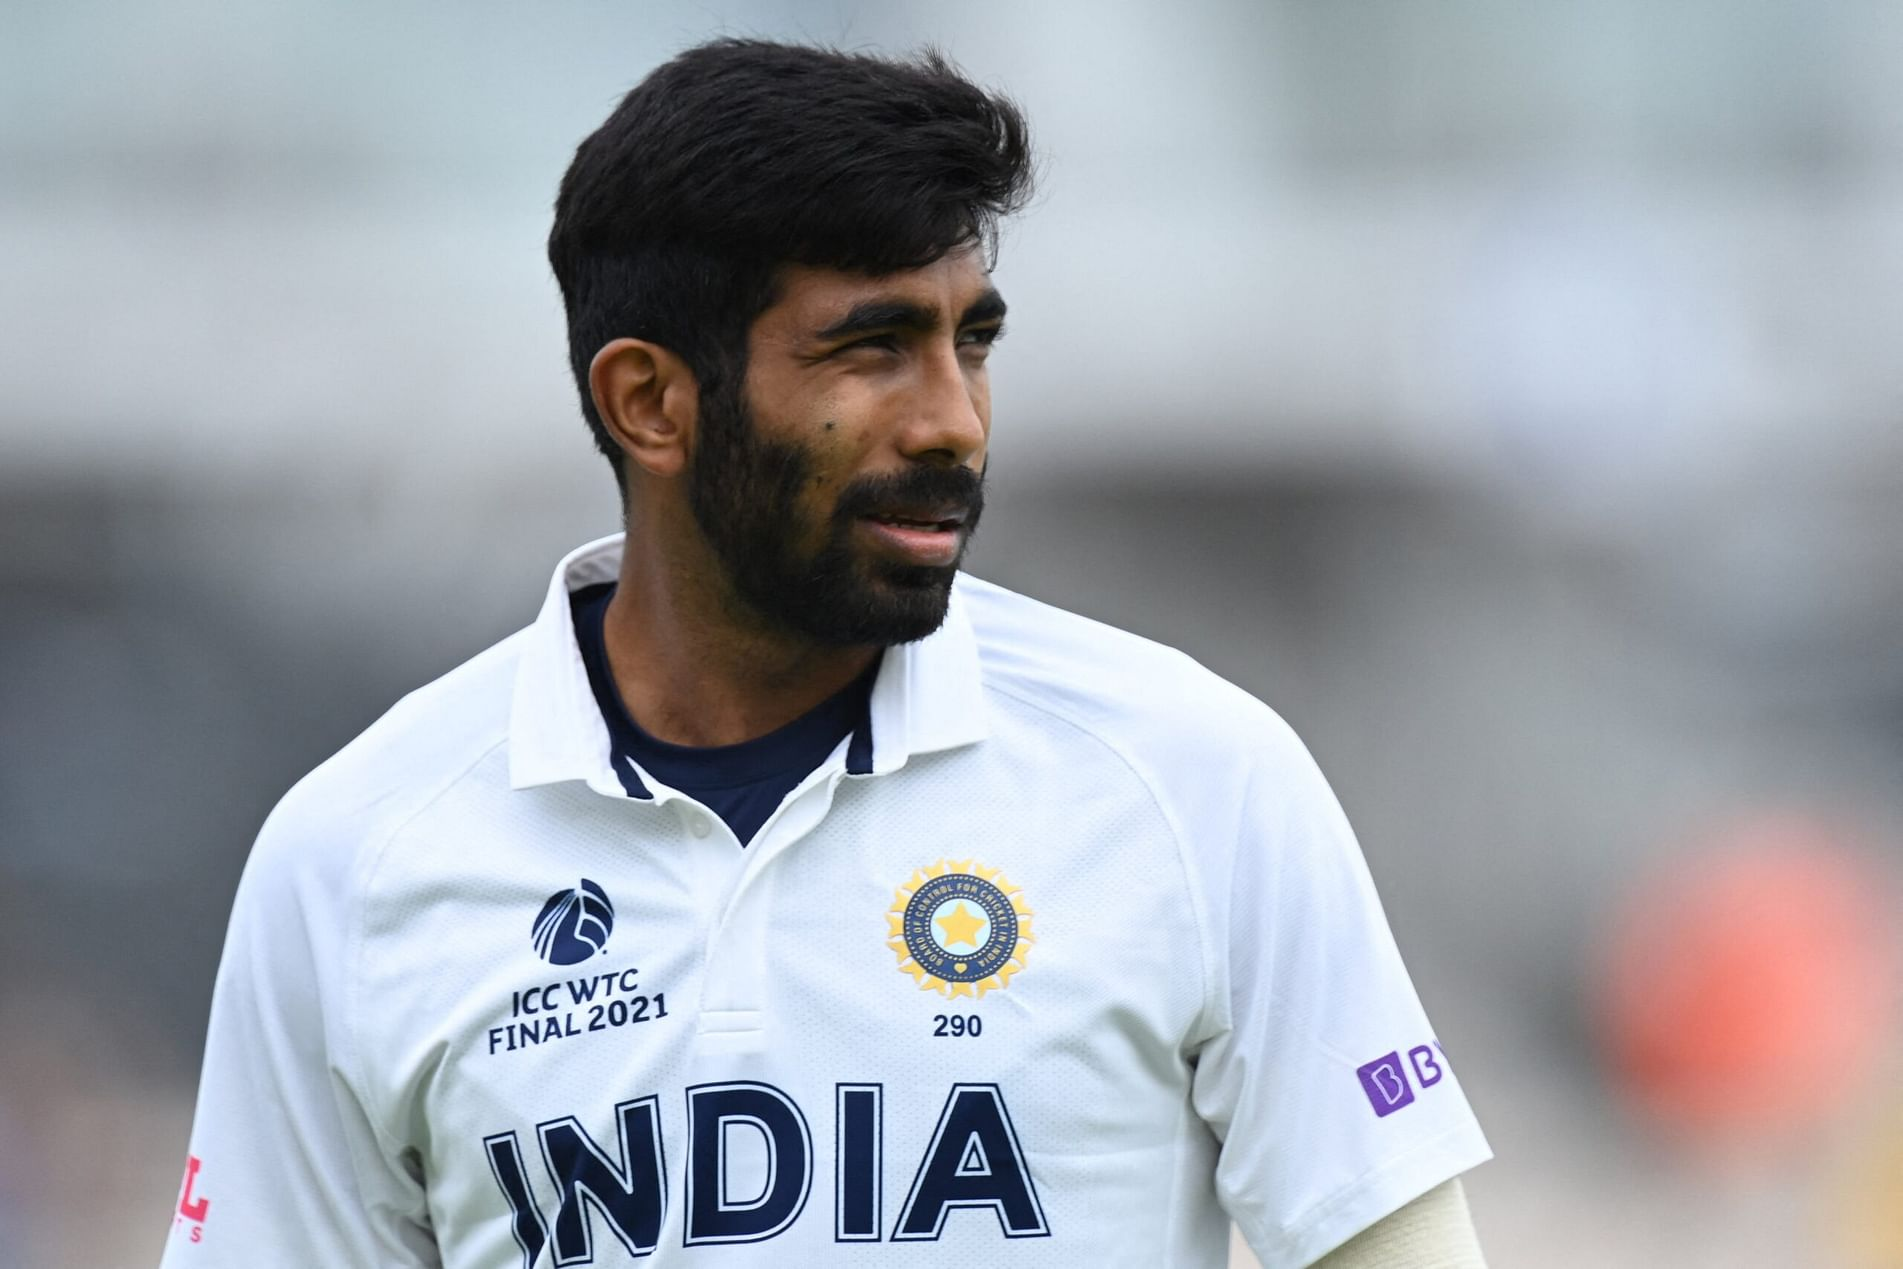 I Didn't Get Any Formal Coaching So I Used To Copy Everybody's Actions - Jasprit  Bumrah Reveals How He Ended Up With His Bowling Action